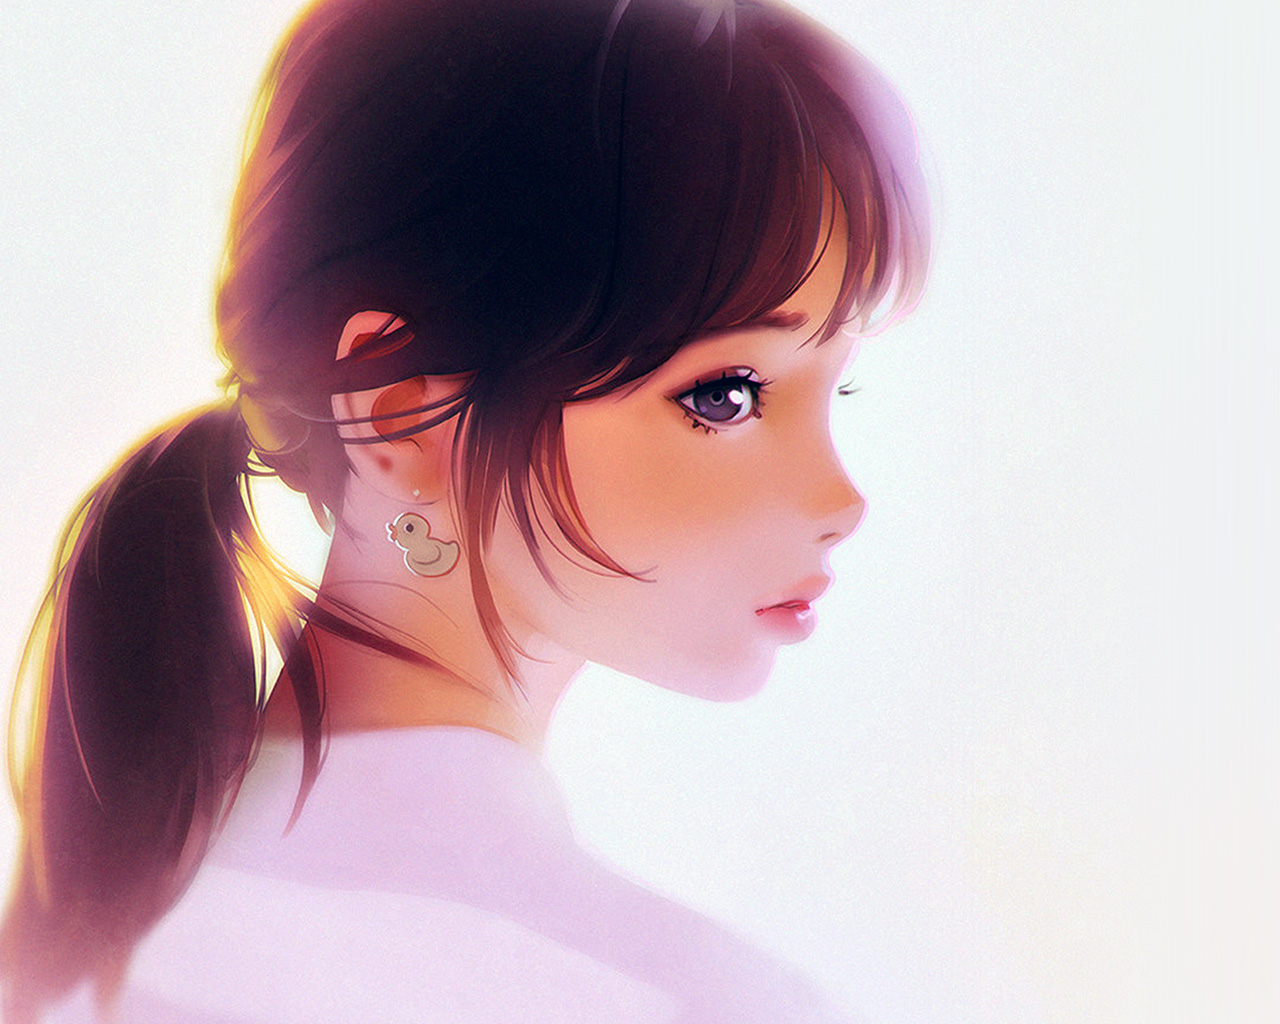 i love papers av42girlfacecuteilyakuvshinov